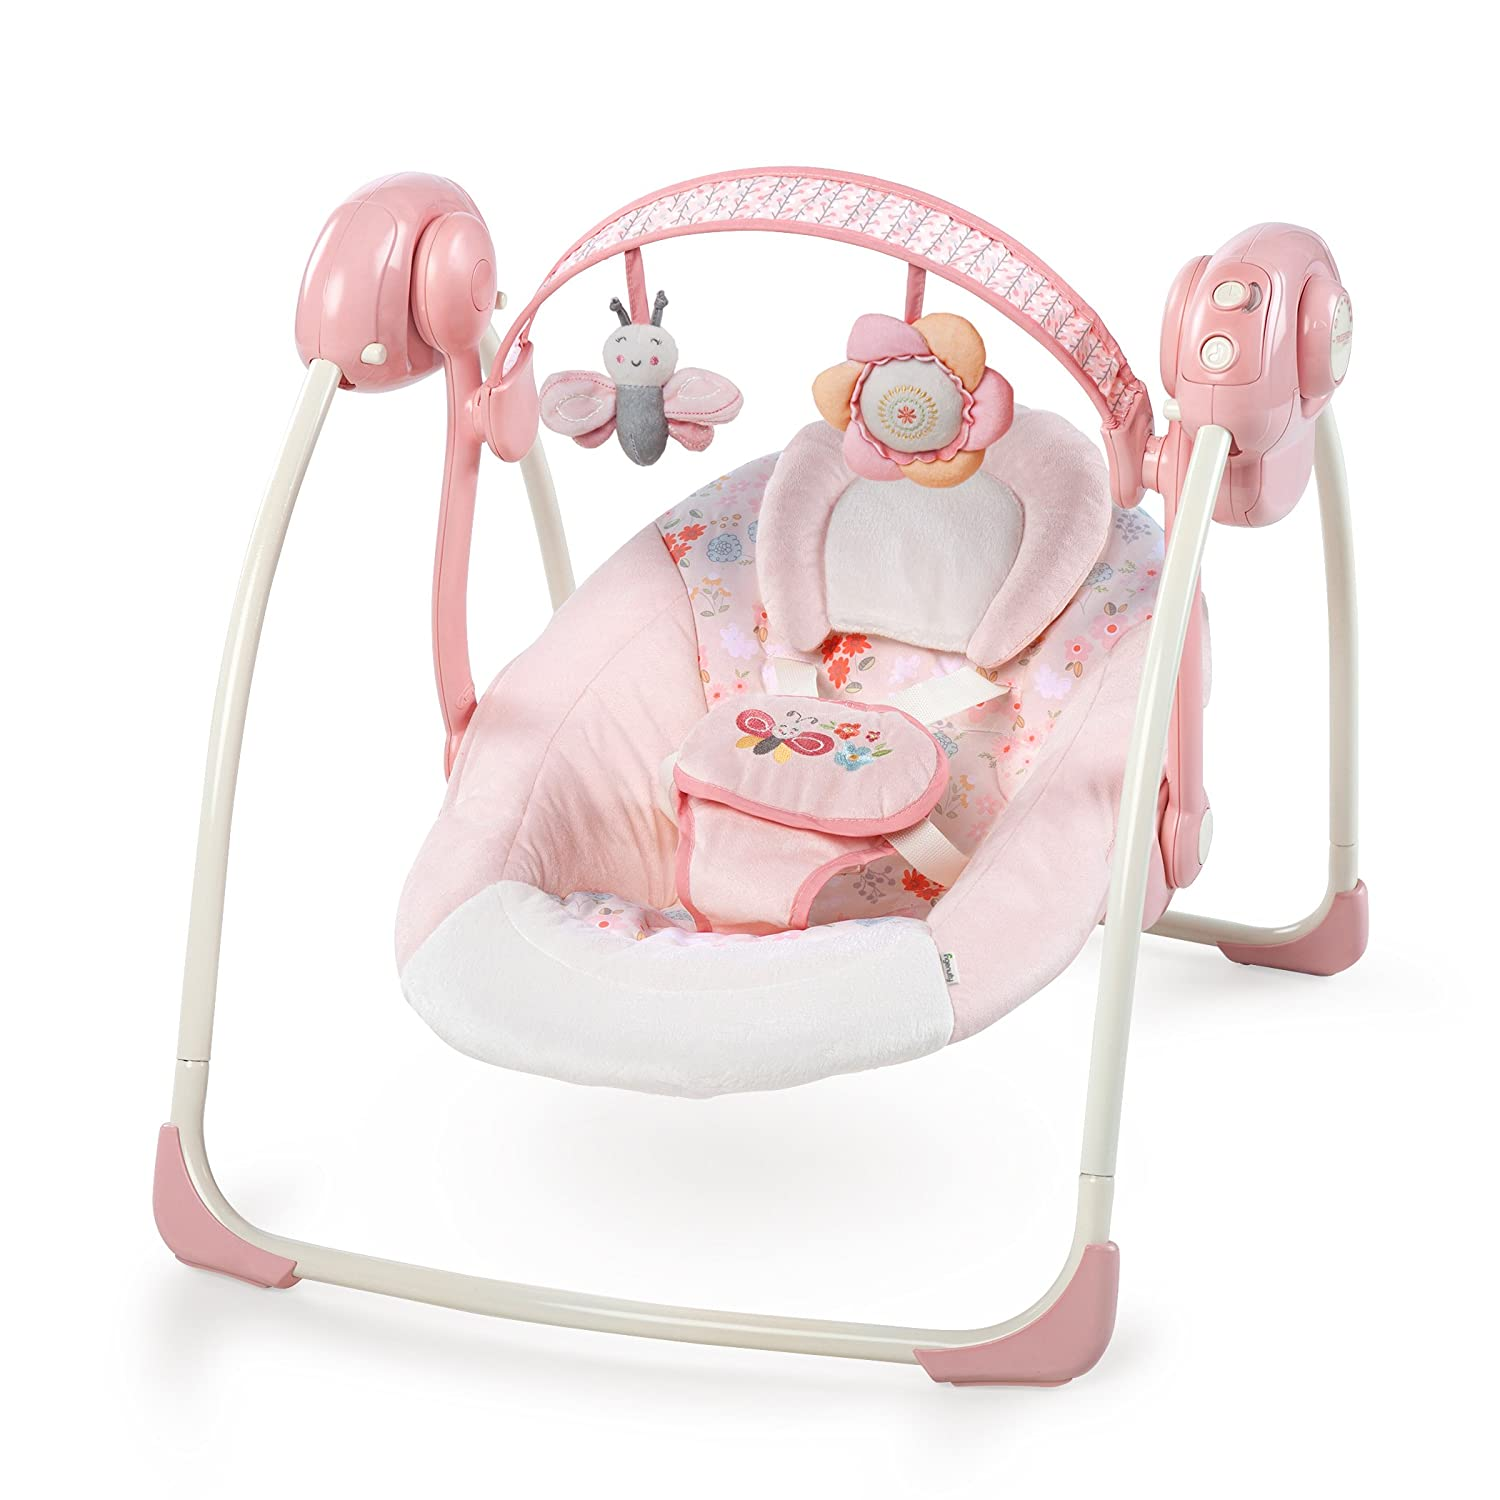 Ingenuity Soothe 'N Delight Portable Swing, Felicity Floral Kids II (Chino CA) 60675